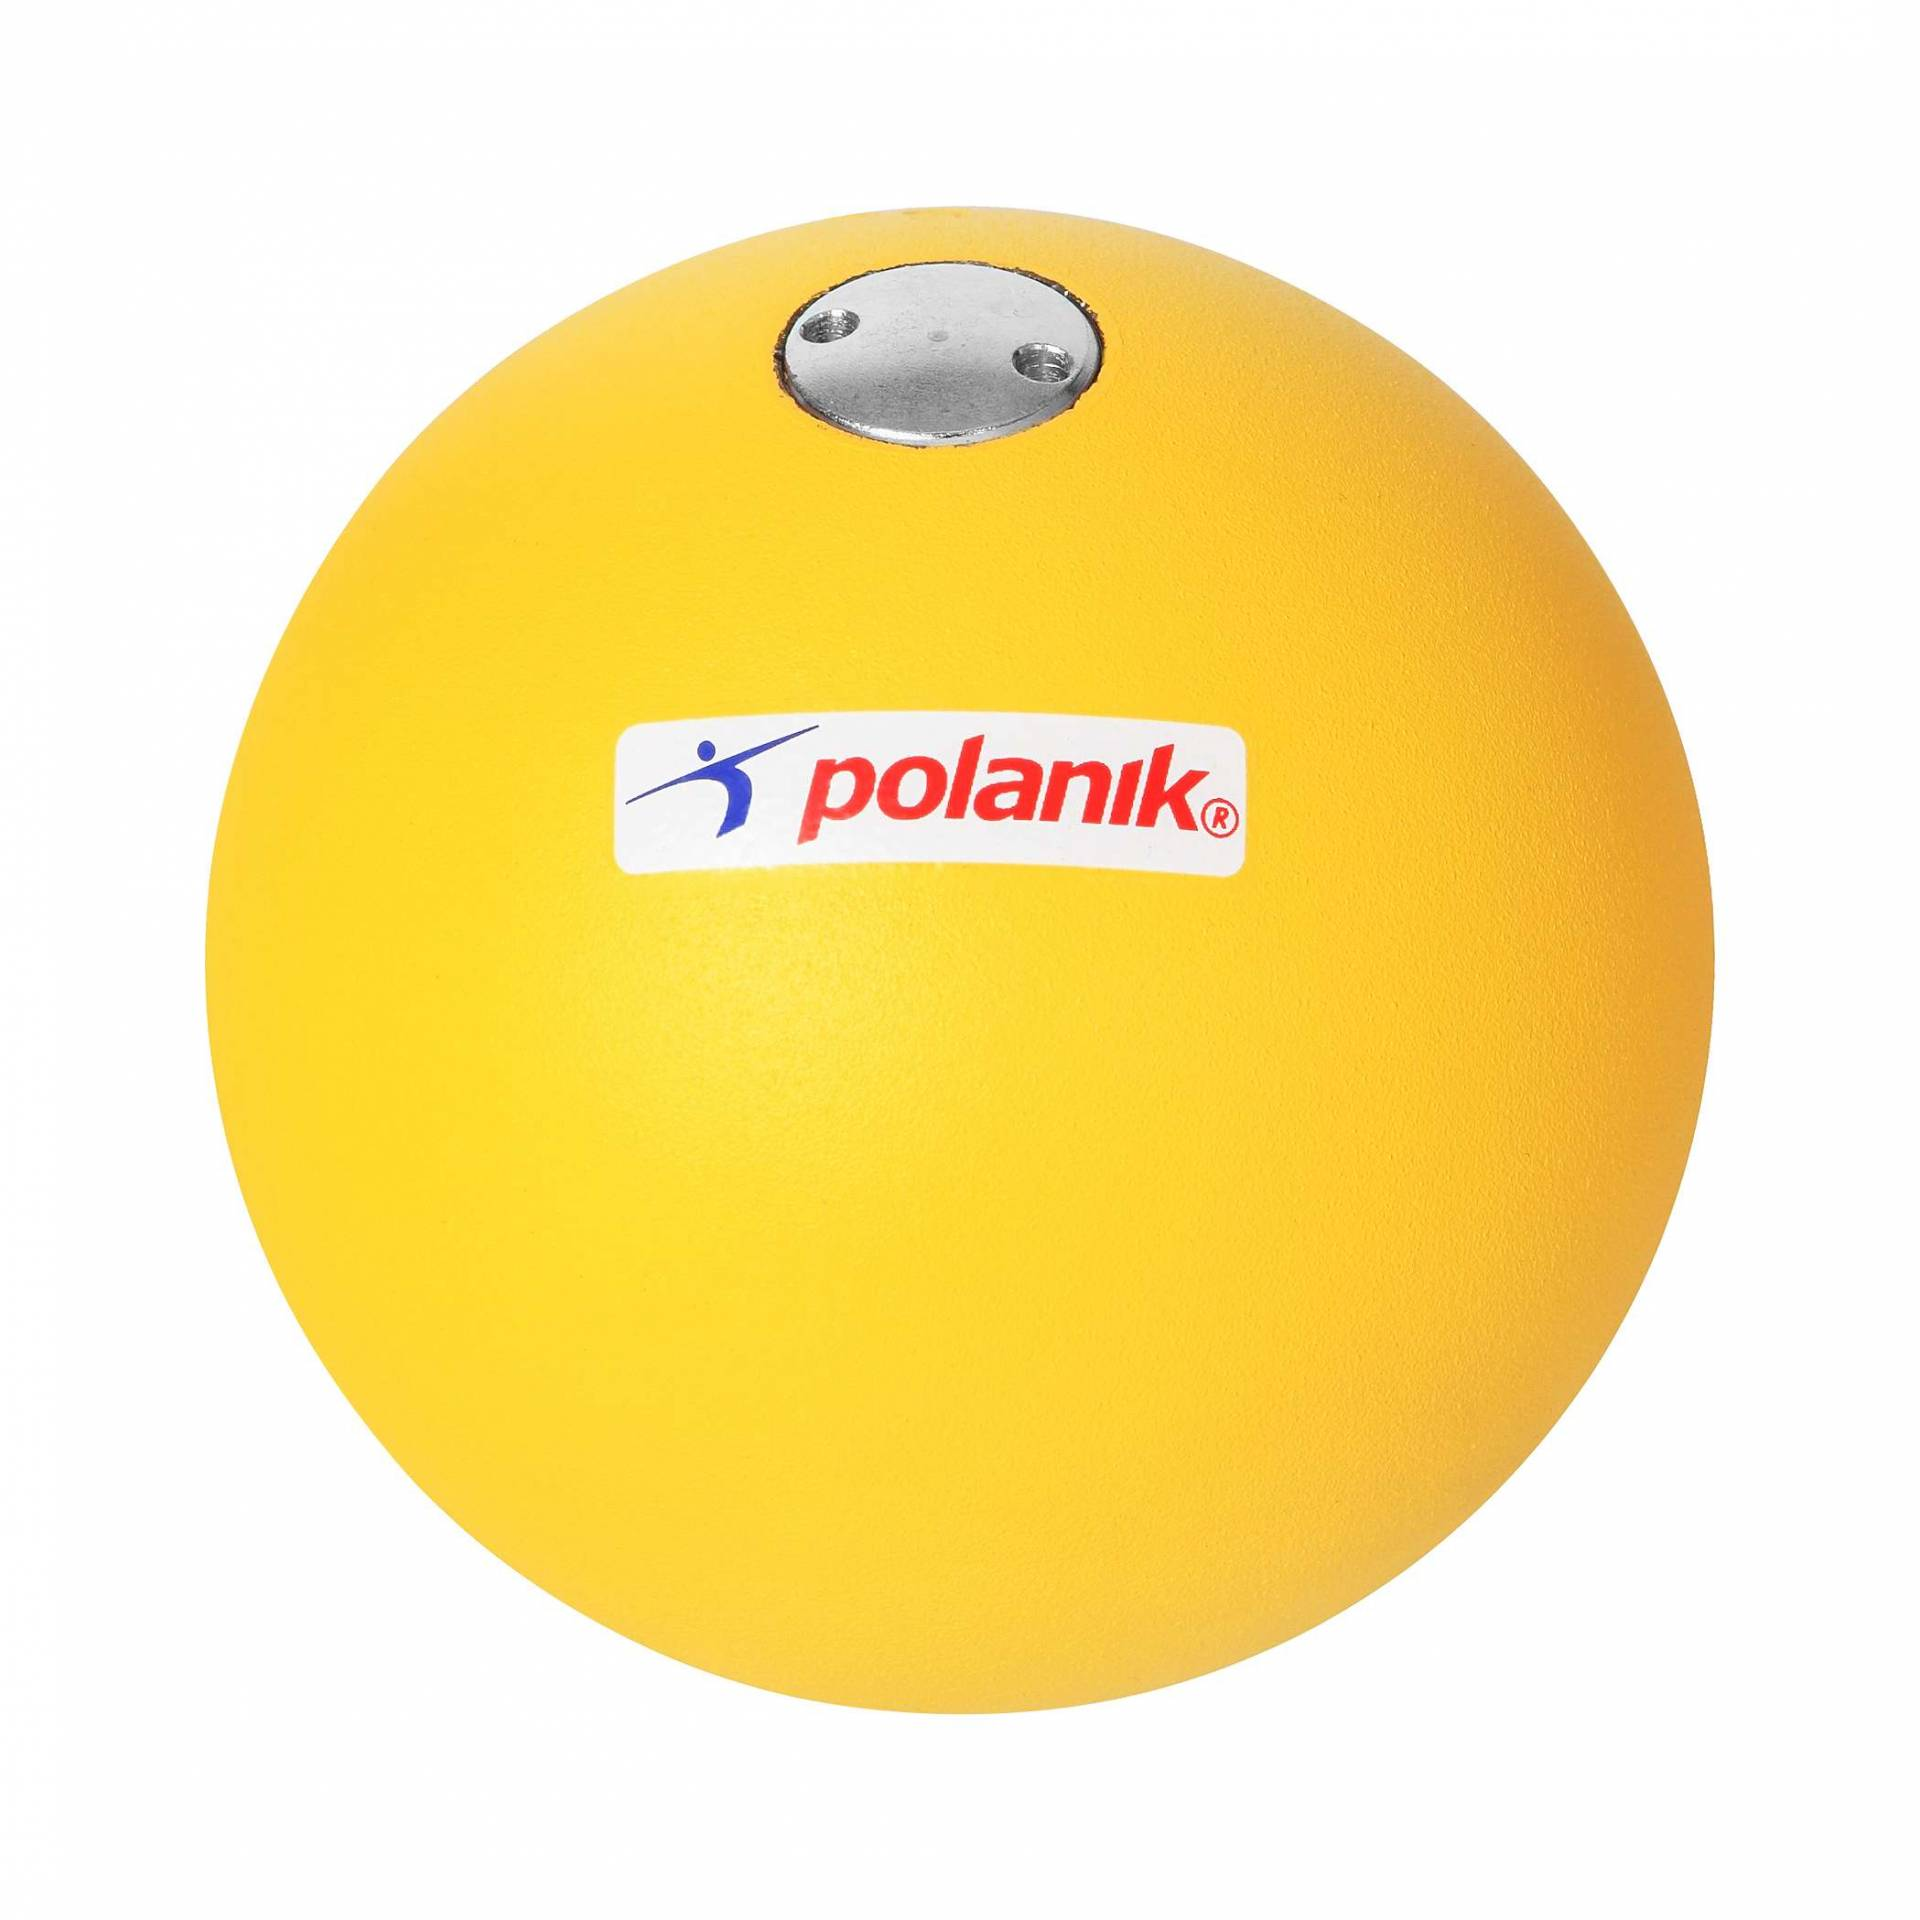 Polanik Wettkampf-Stoßkugel, 95 mm, World Athletics, 4 kg von Polanik